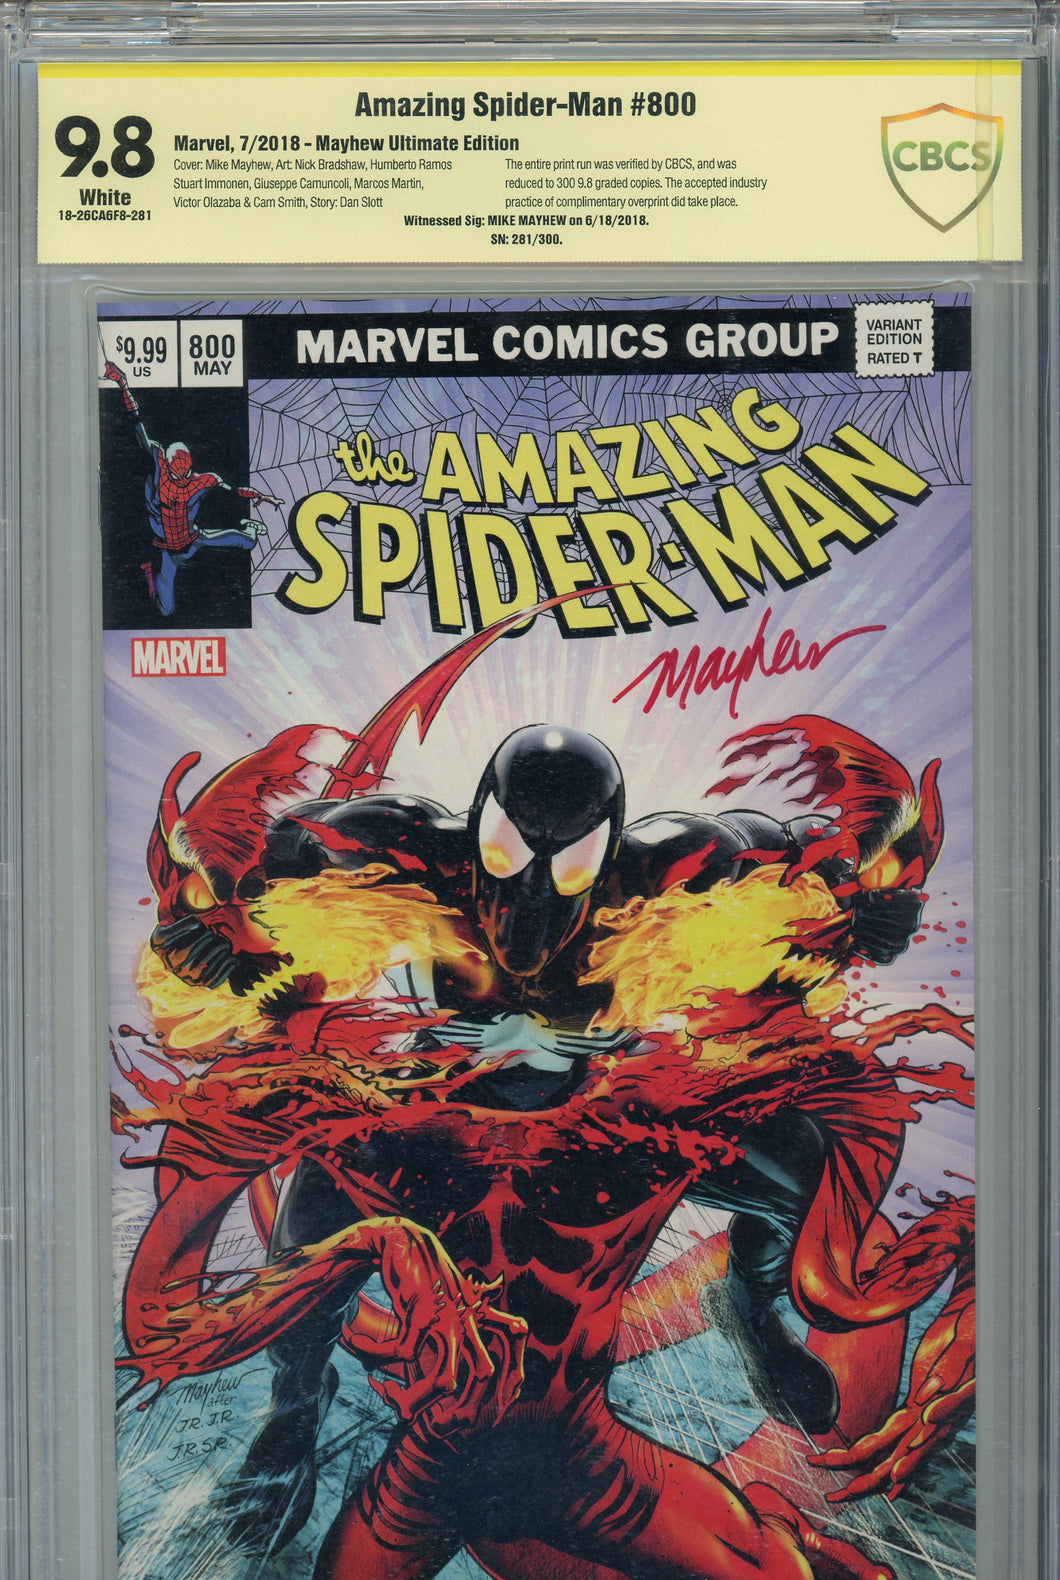 Amazing Spider-Man #800 CBCS 9.8 SS Mayhew Ultimate Edition